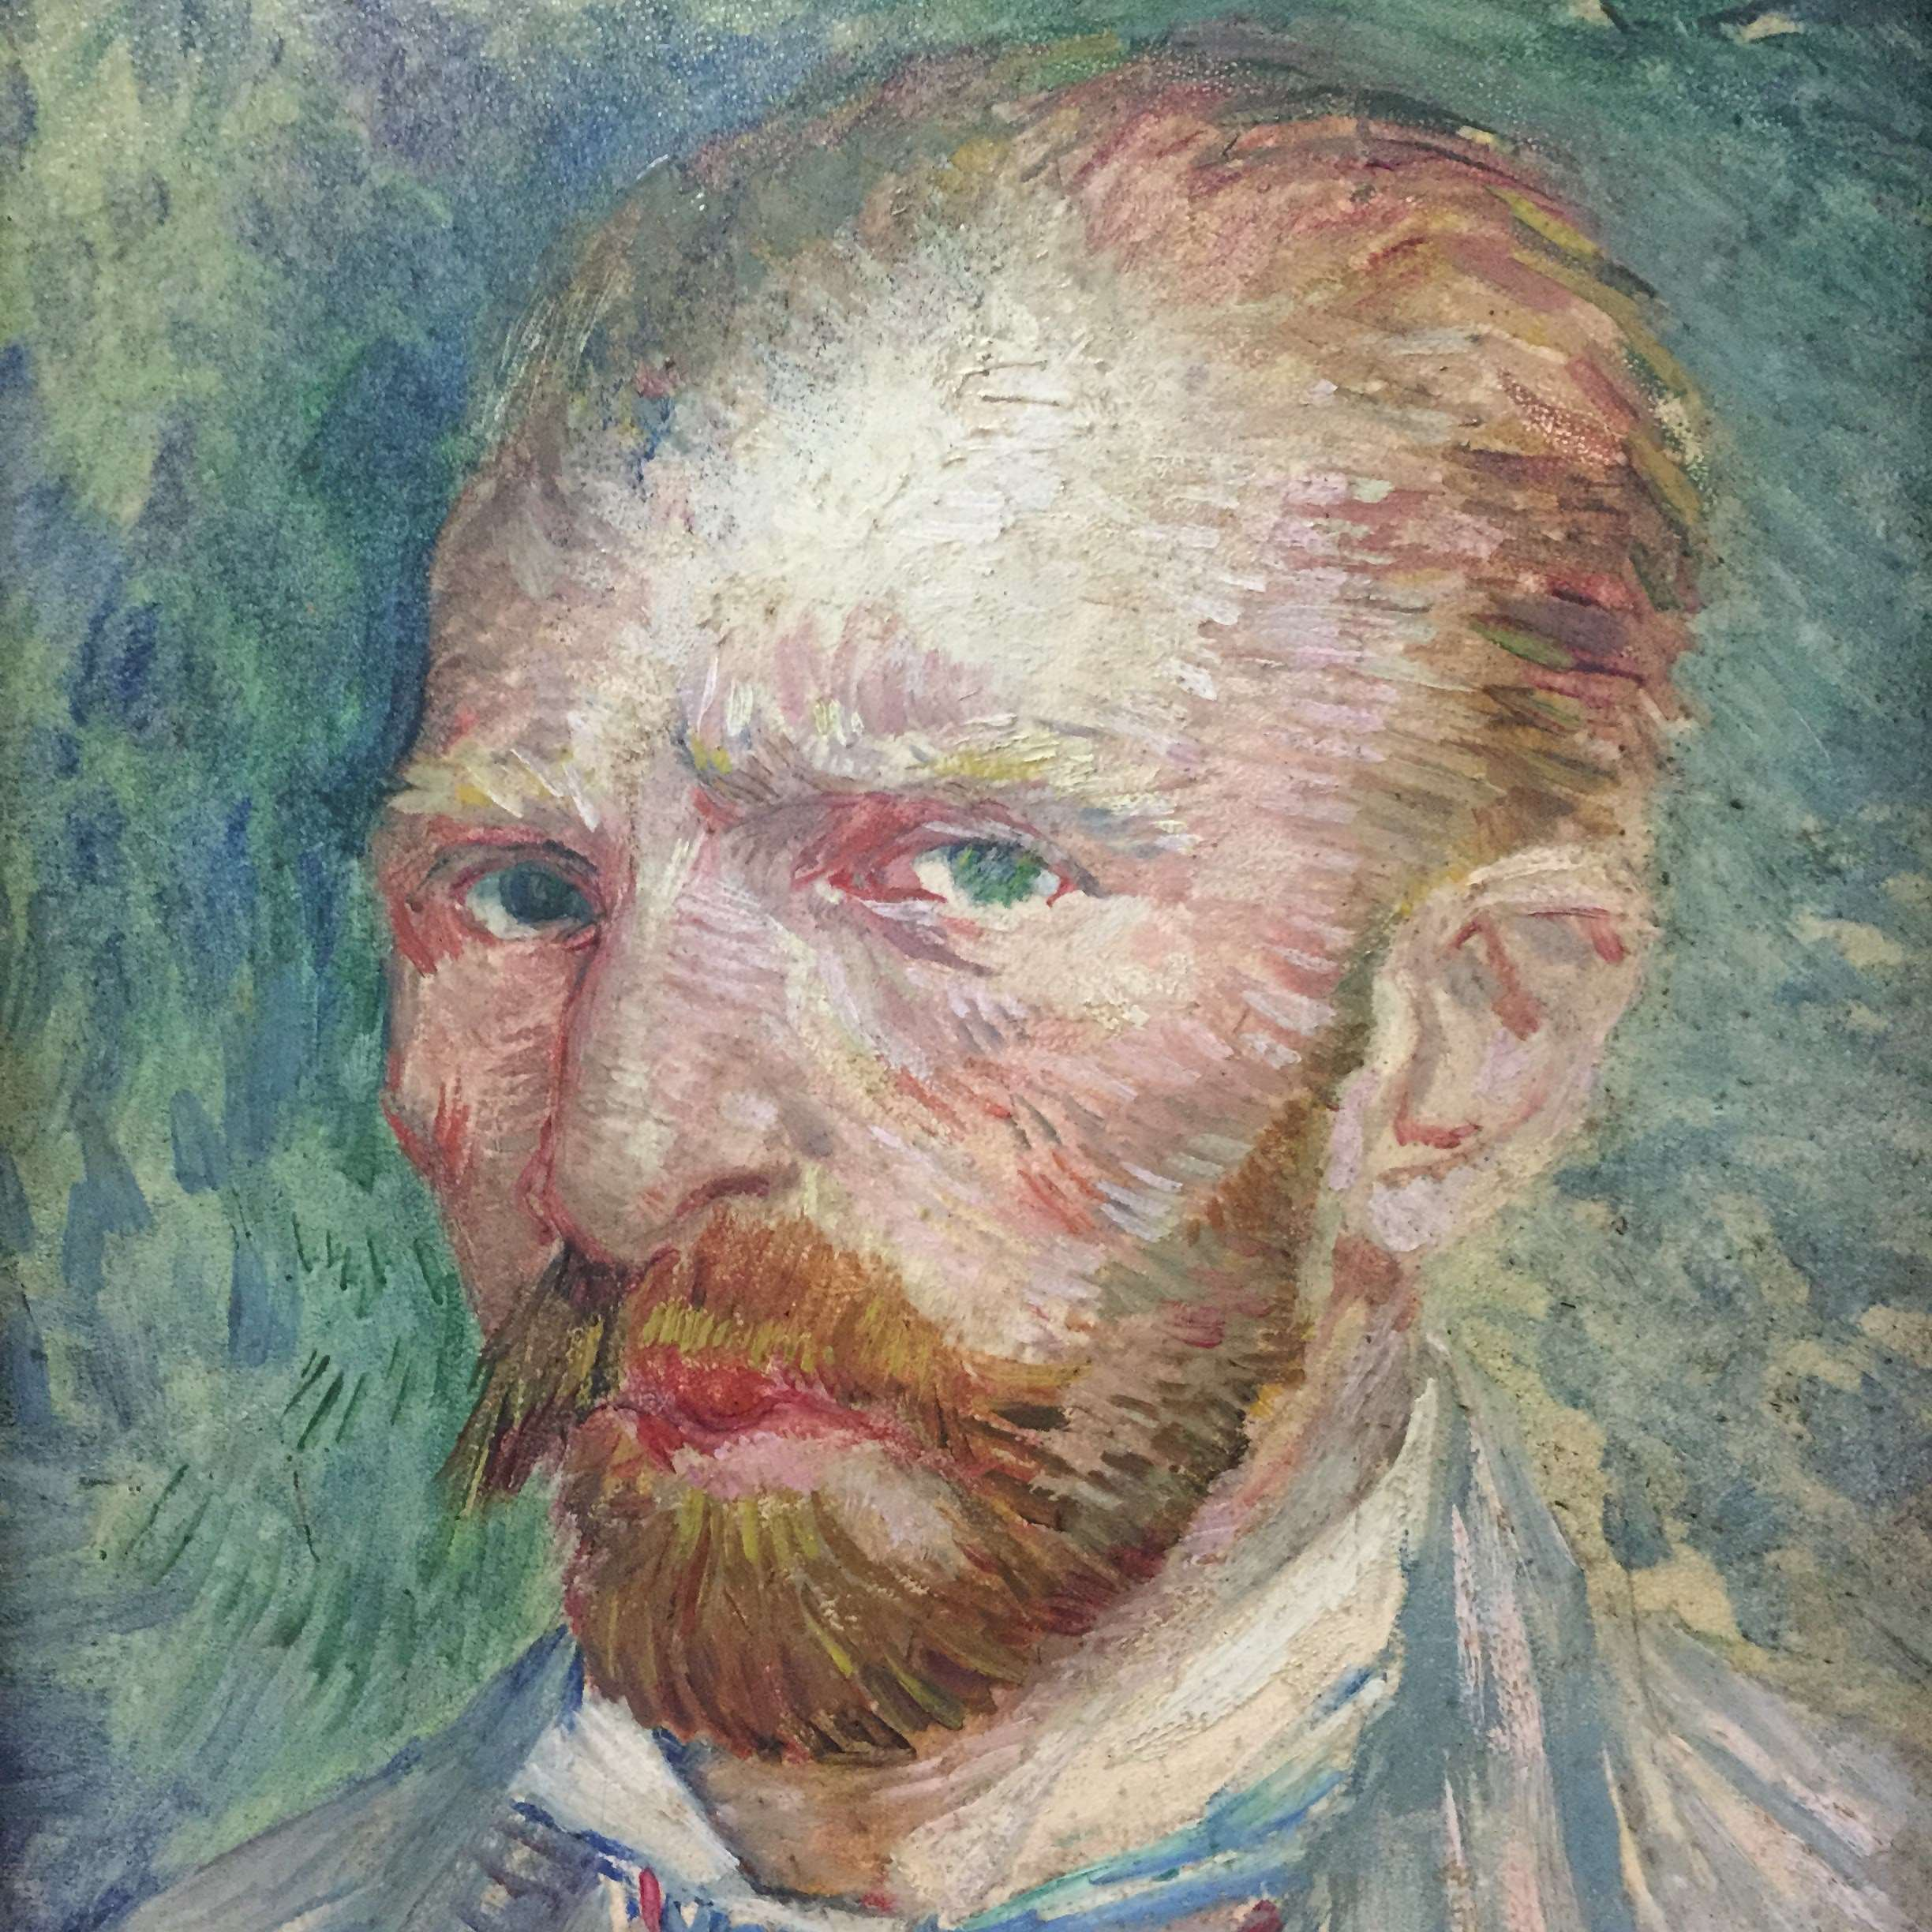 The Kröller-Müller also happens to house the second largest Van Gogh collection in the world